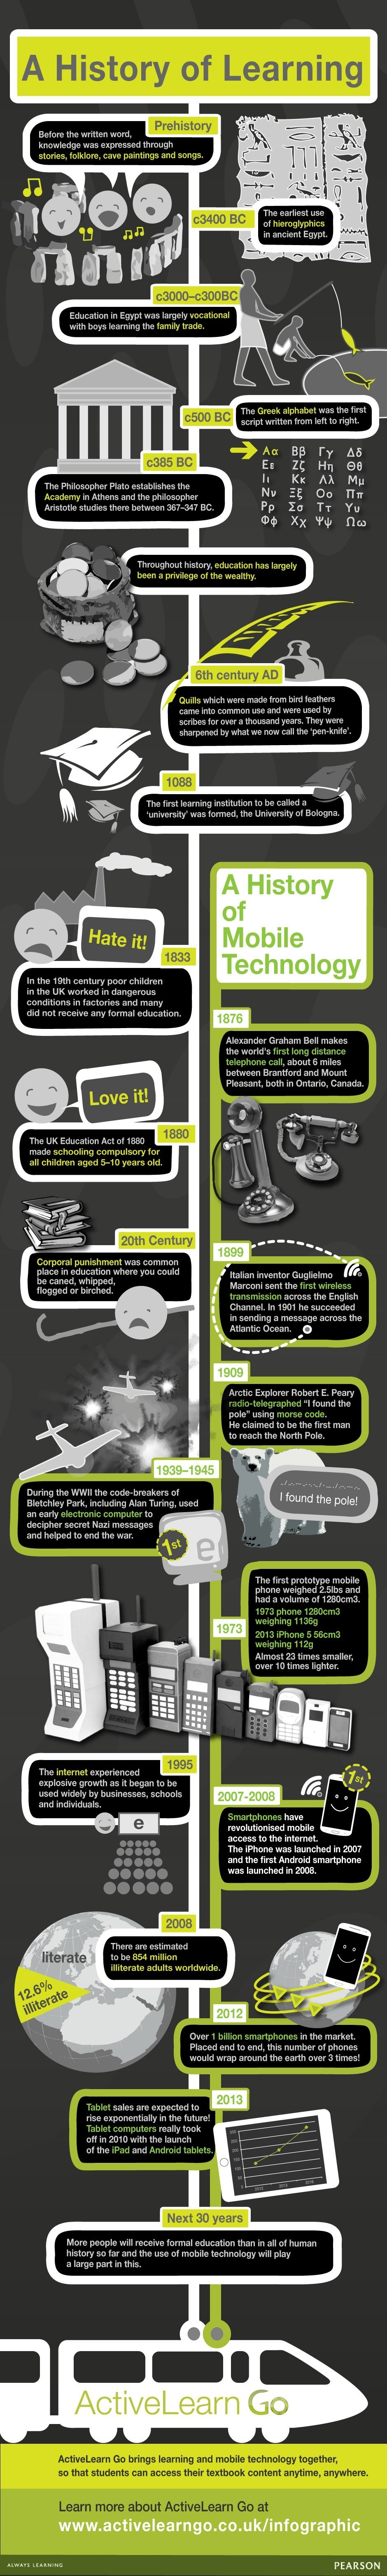 A History of Learning and Mobile Technology Infographic - e-Learning Infographicse-Learning Infographics thumbnail